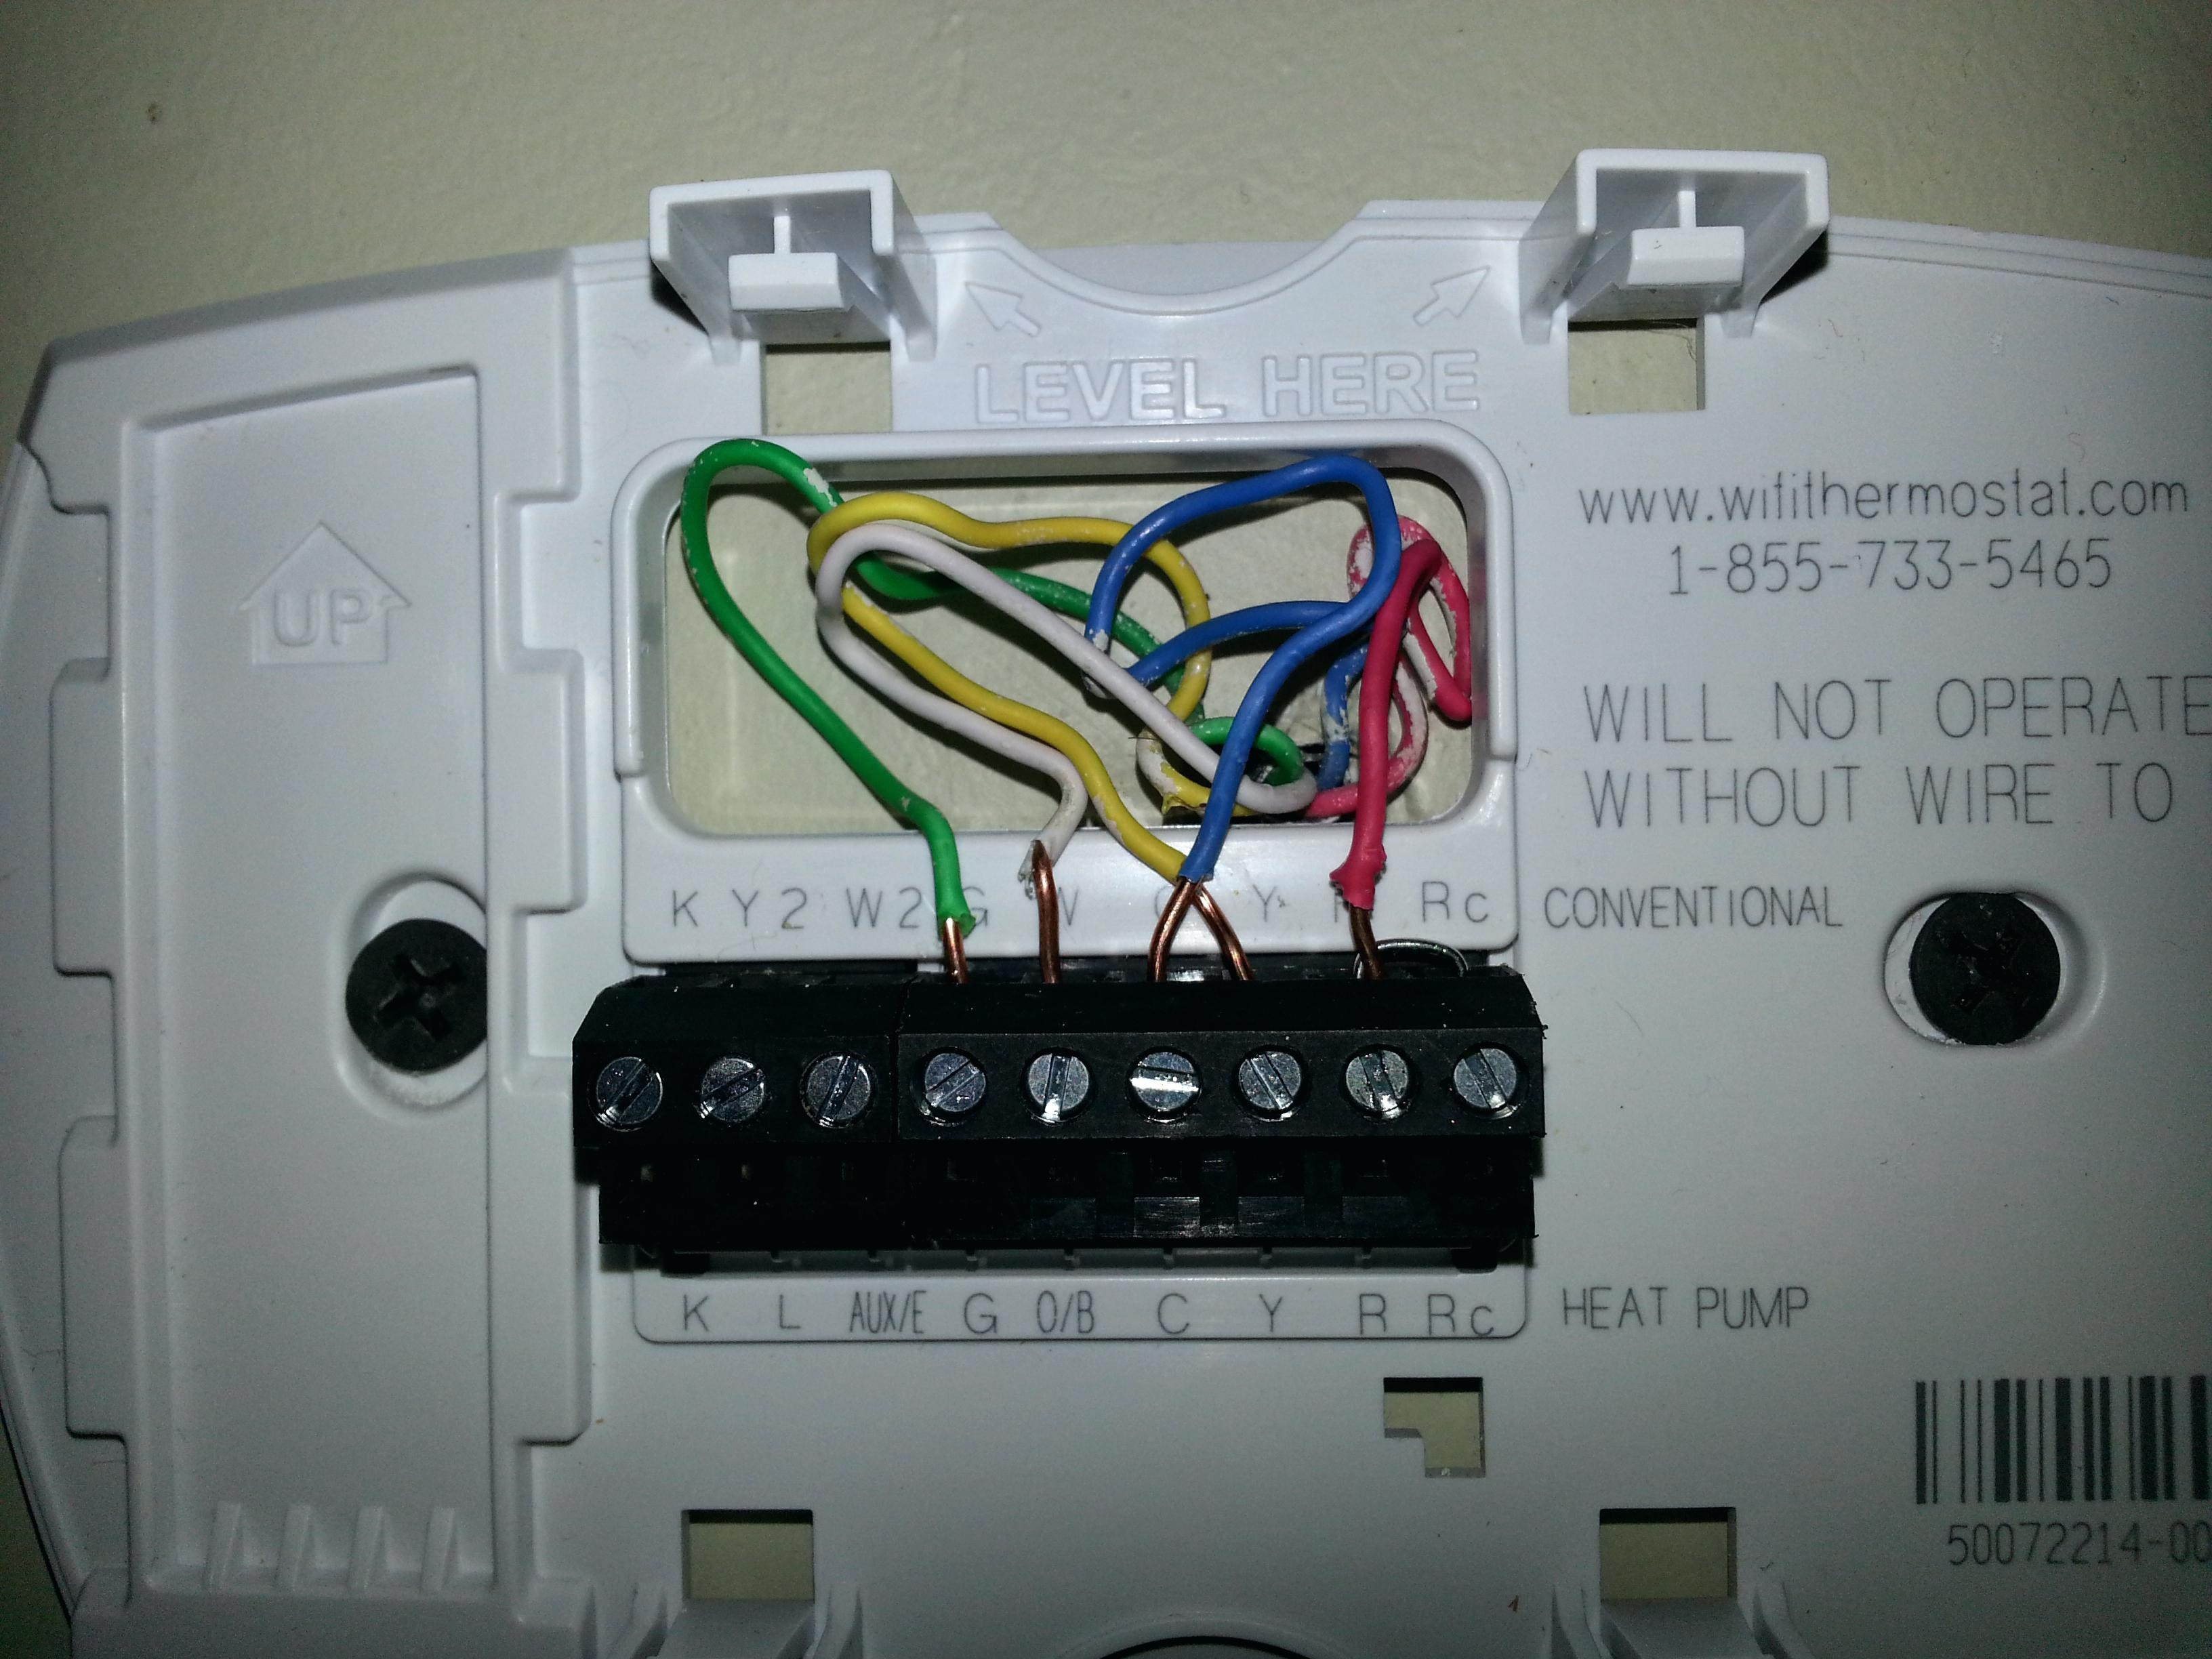 Honeywell Heat Pump thermostat Wiring Diagram Honeywell Th8000 thermostat Wiring Diagram Save Honeywell Heat Pump Of Honeywell Heat Pump thermostat Wiring Diagram